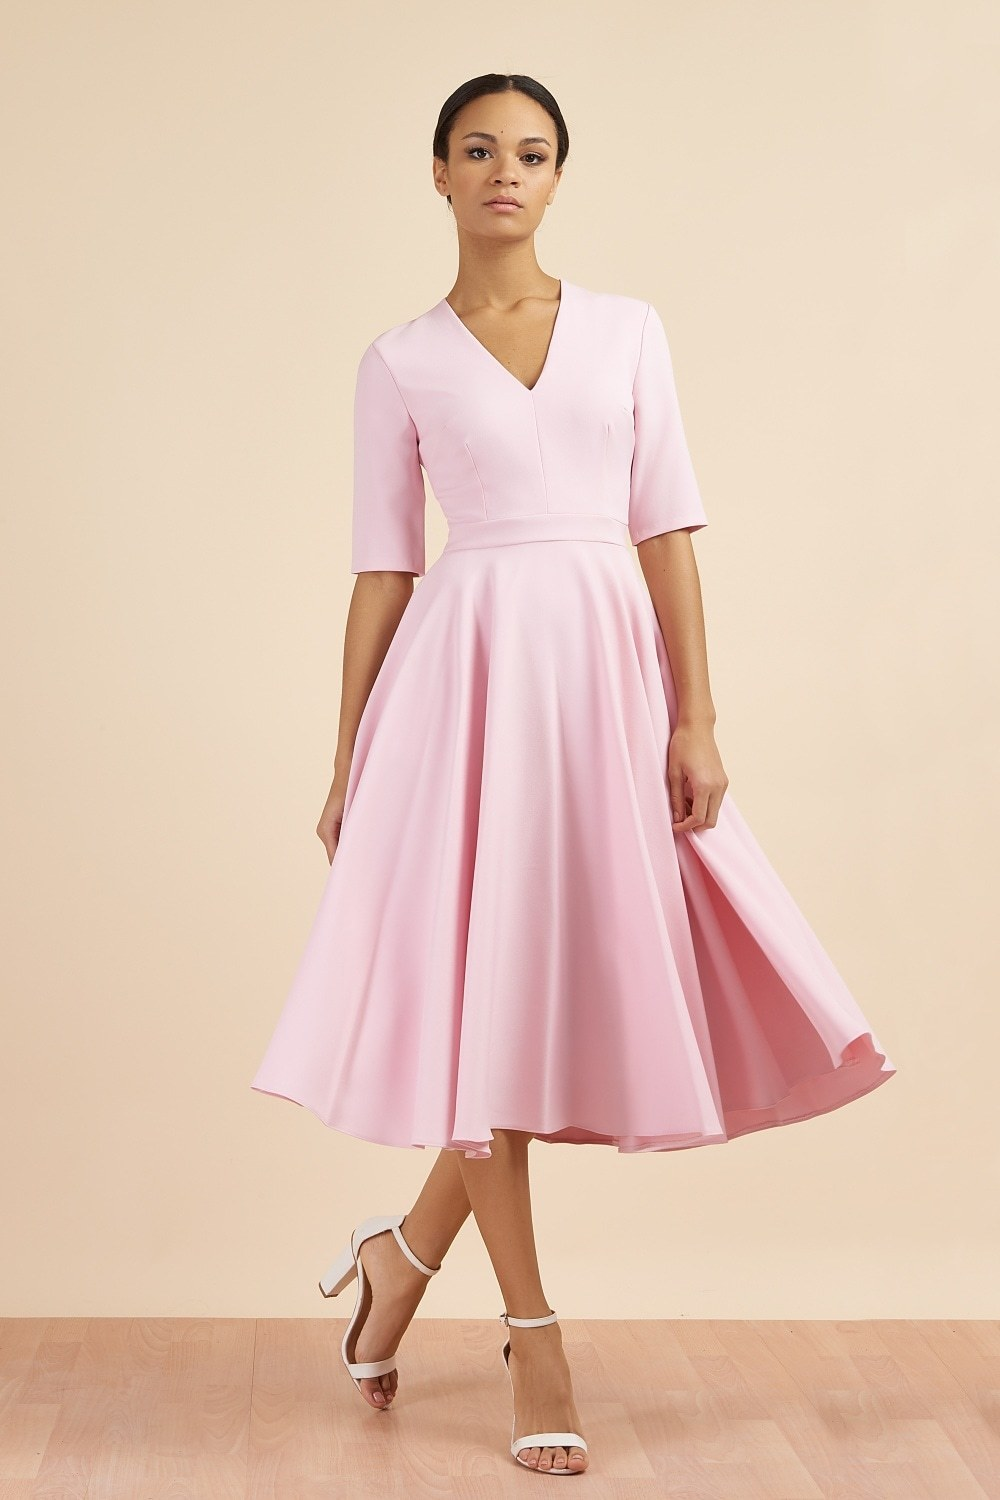 Myla Dress in Pale Pink